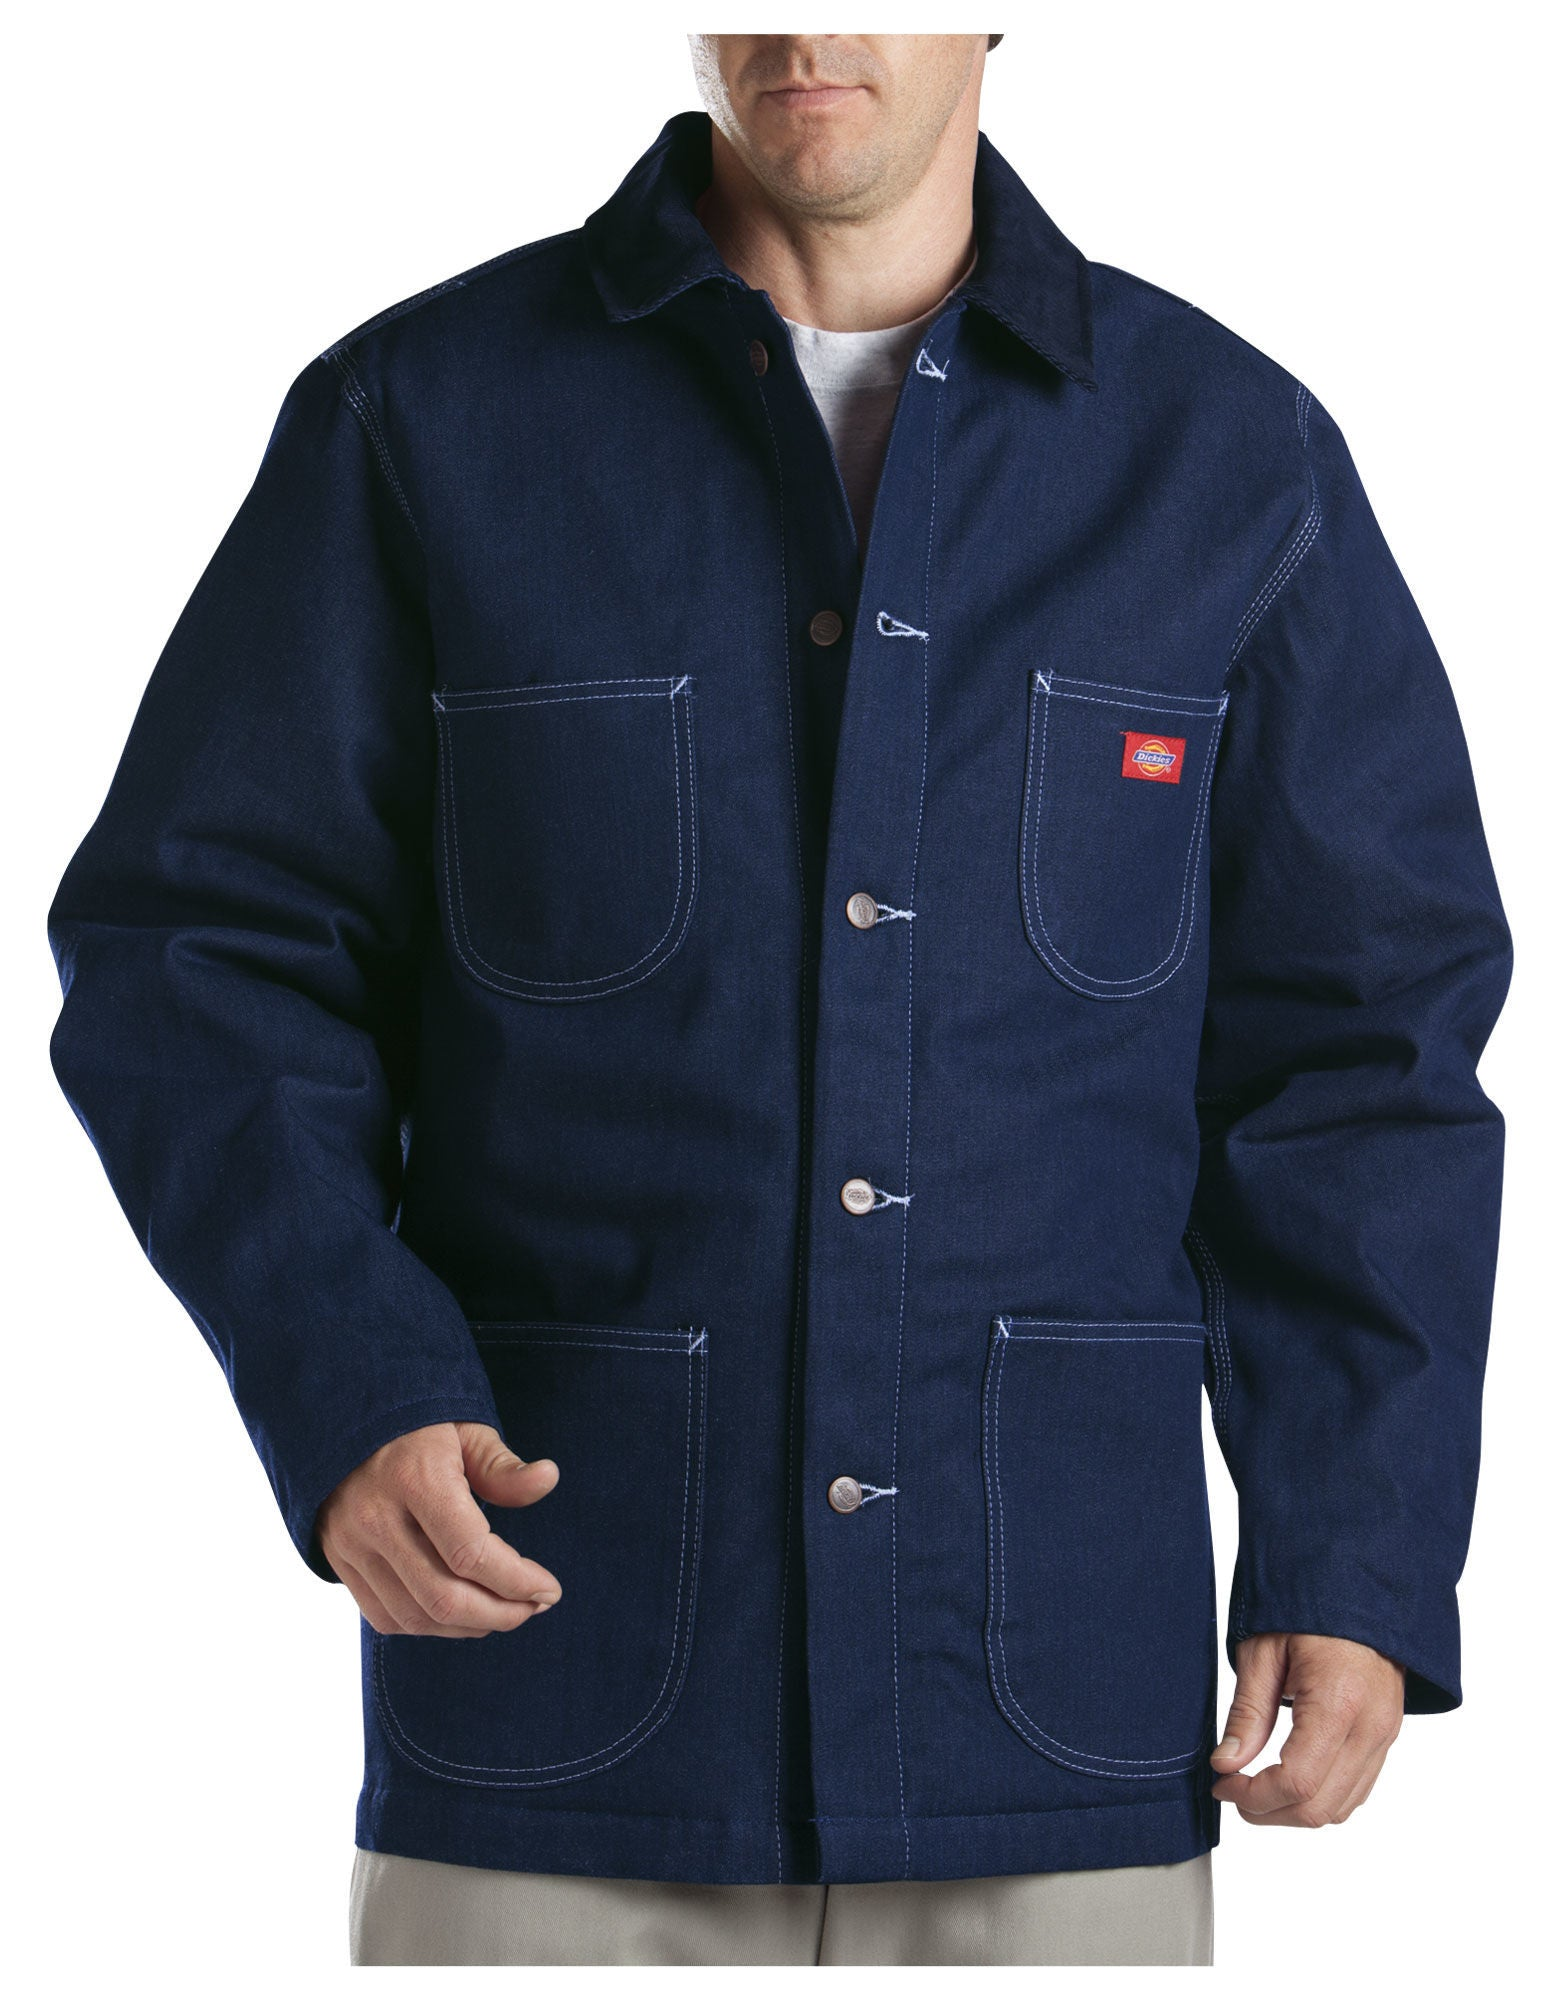 9934d492f3 Dickies Denim Blanket Lined Chore Coat #3494 – ValueMaxx